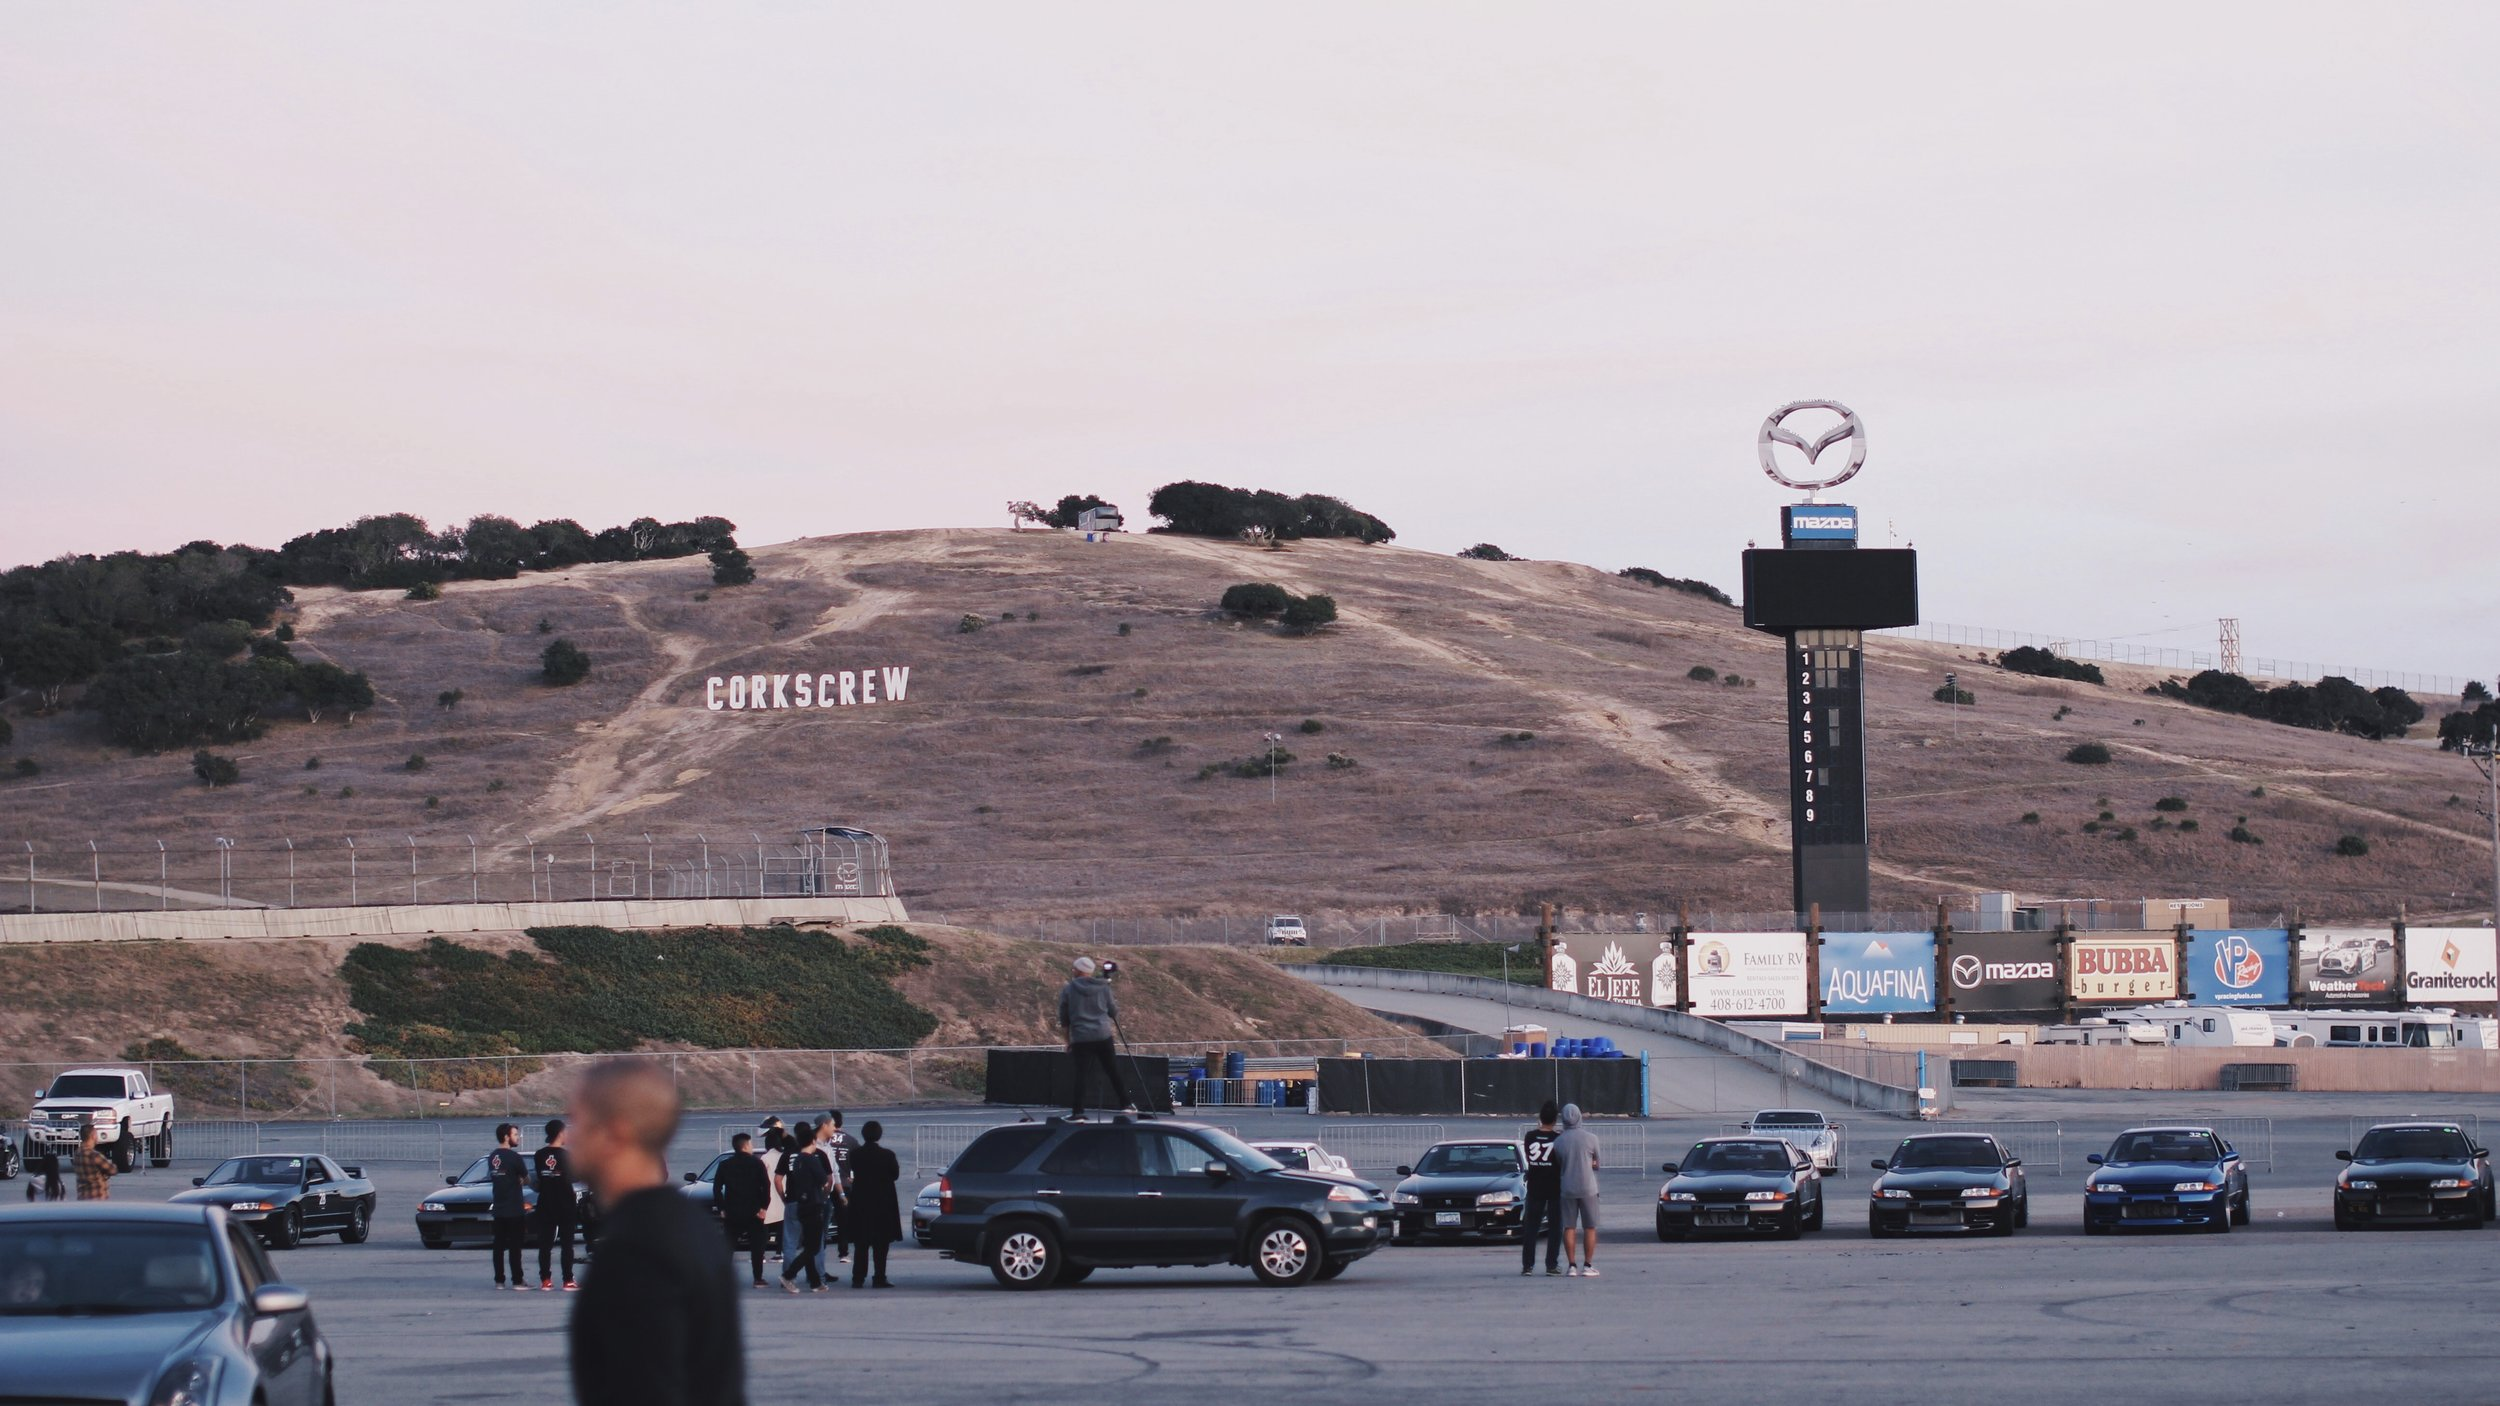 I couldn't sleep the whole night since I have been very anxious about the event. We all woke up at 7 am to quickly get ready for the big day. As I was rolling into Laguna Seca, I had a moment feeling that I have been here before. Of course,I knew it was my first time, but it was a powerful experience of déjà vu from my GrandTurismo gaming days since the PS1 era. Being at Laguna Seca in person was a remarkable and unforgettable experience. The track is very spacious and I've seen nothing like this back home. And here is a pit garage I rented for my car and equipments.